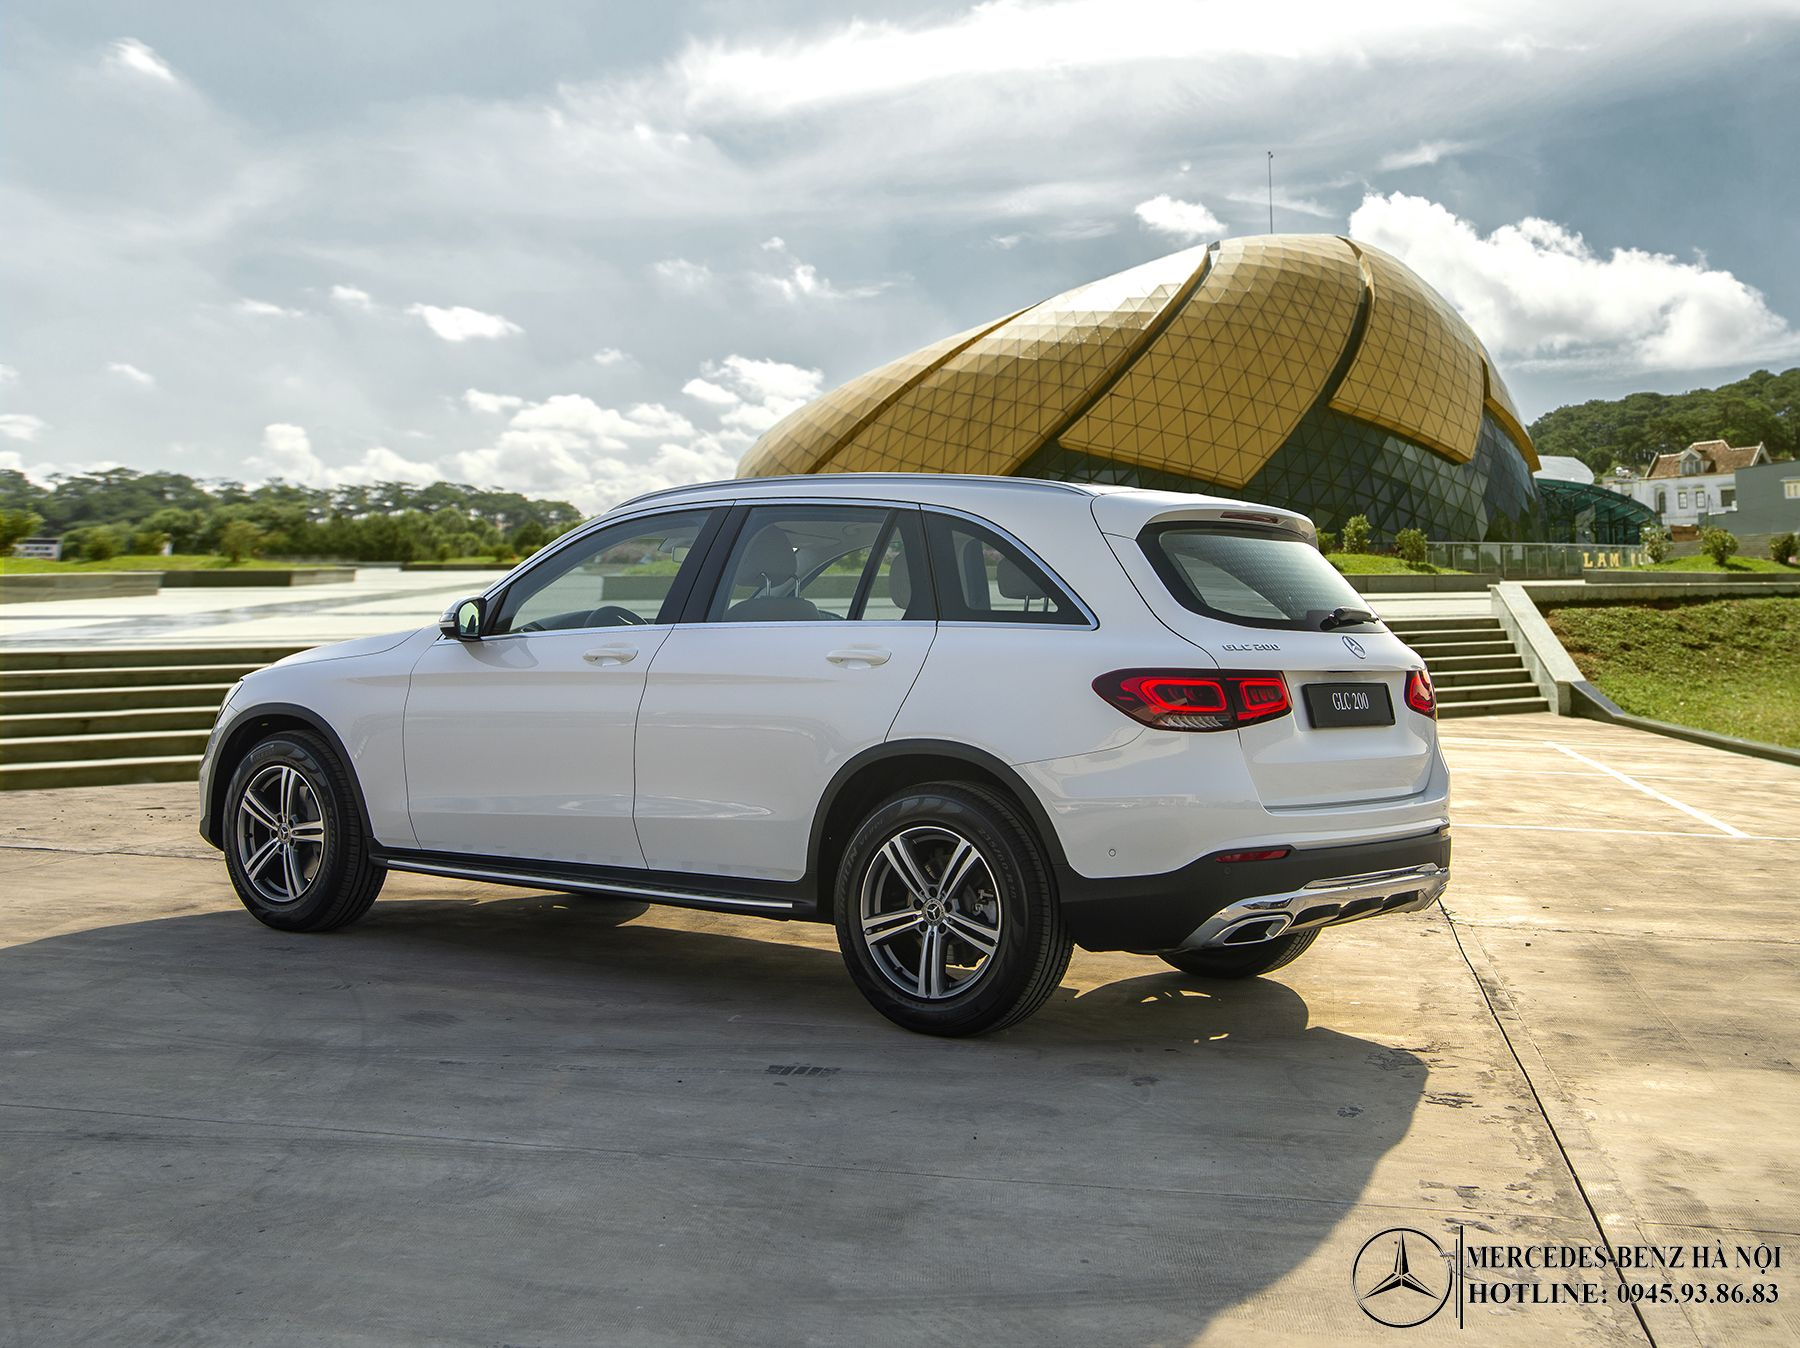 than-xe-Mercedes-Benz-GLC-200-2020_mercedeshanoi-com-vn